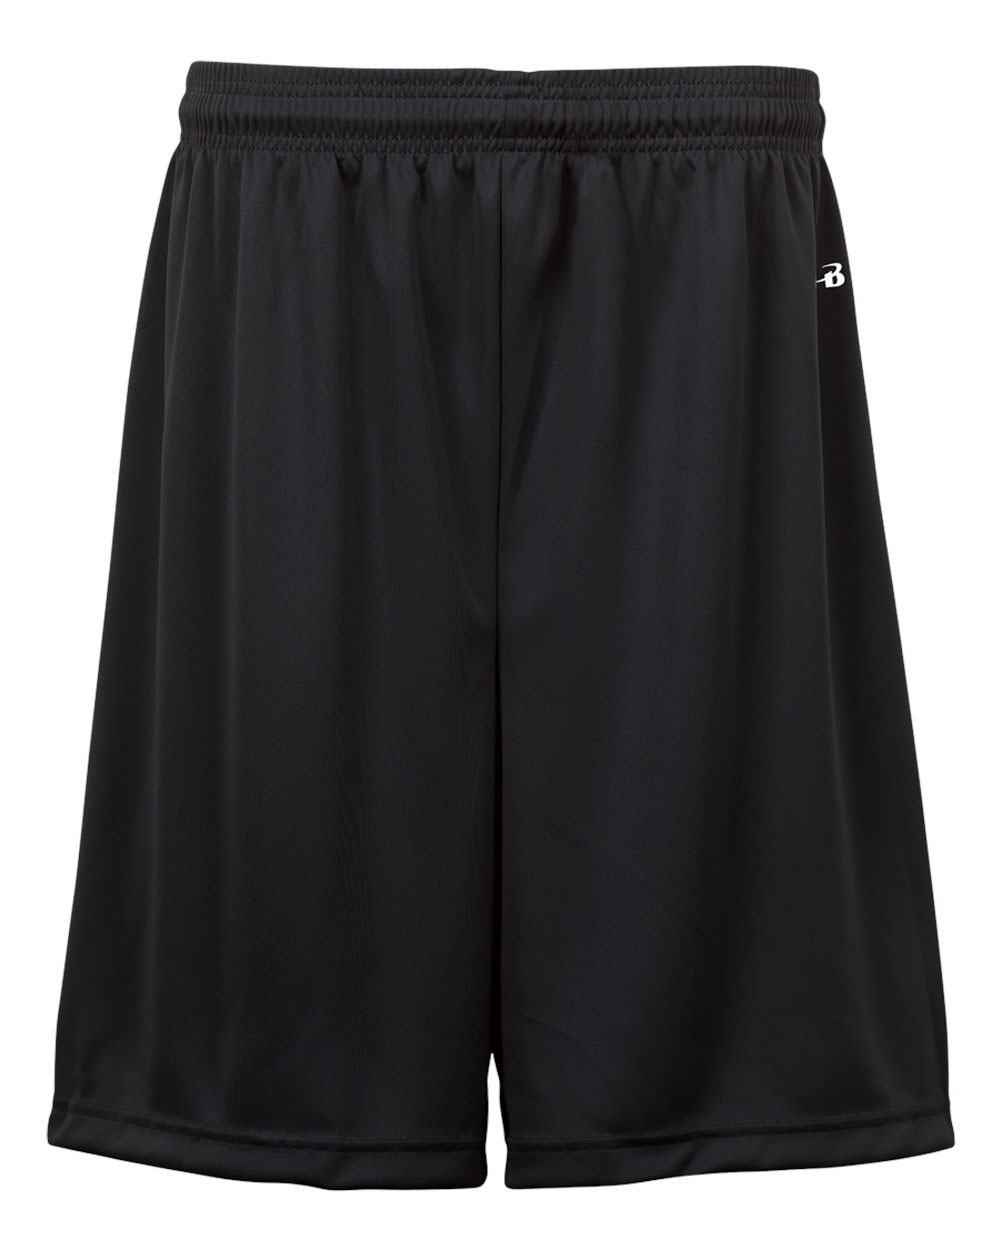 Badger Mens B-Core 9 inch Shorts